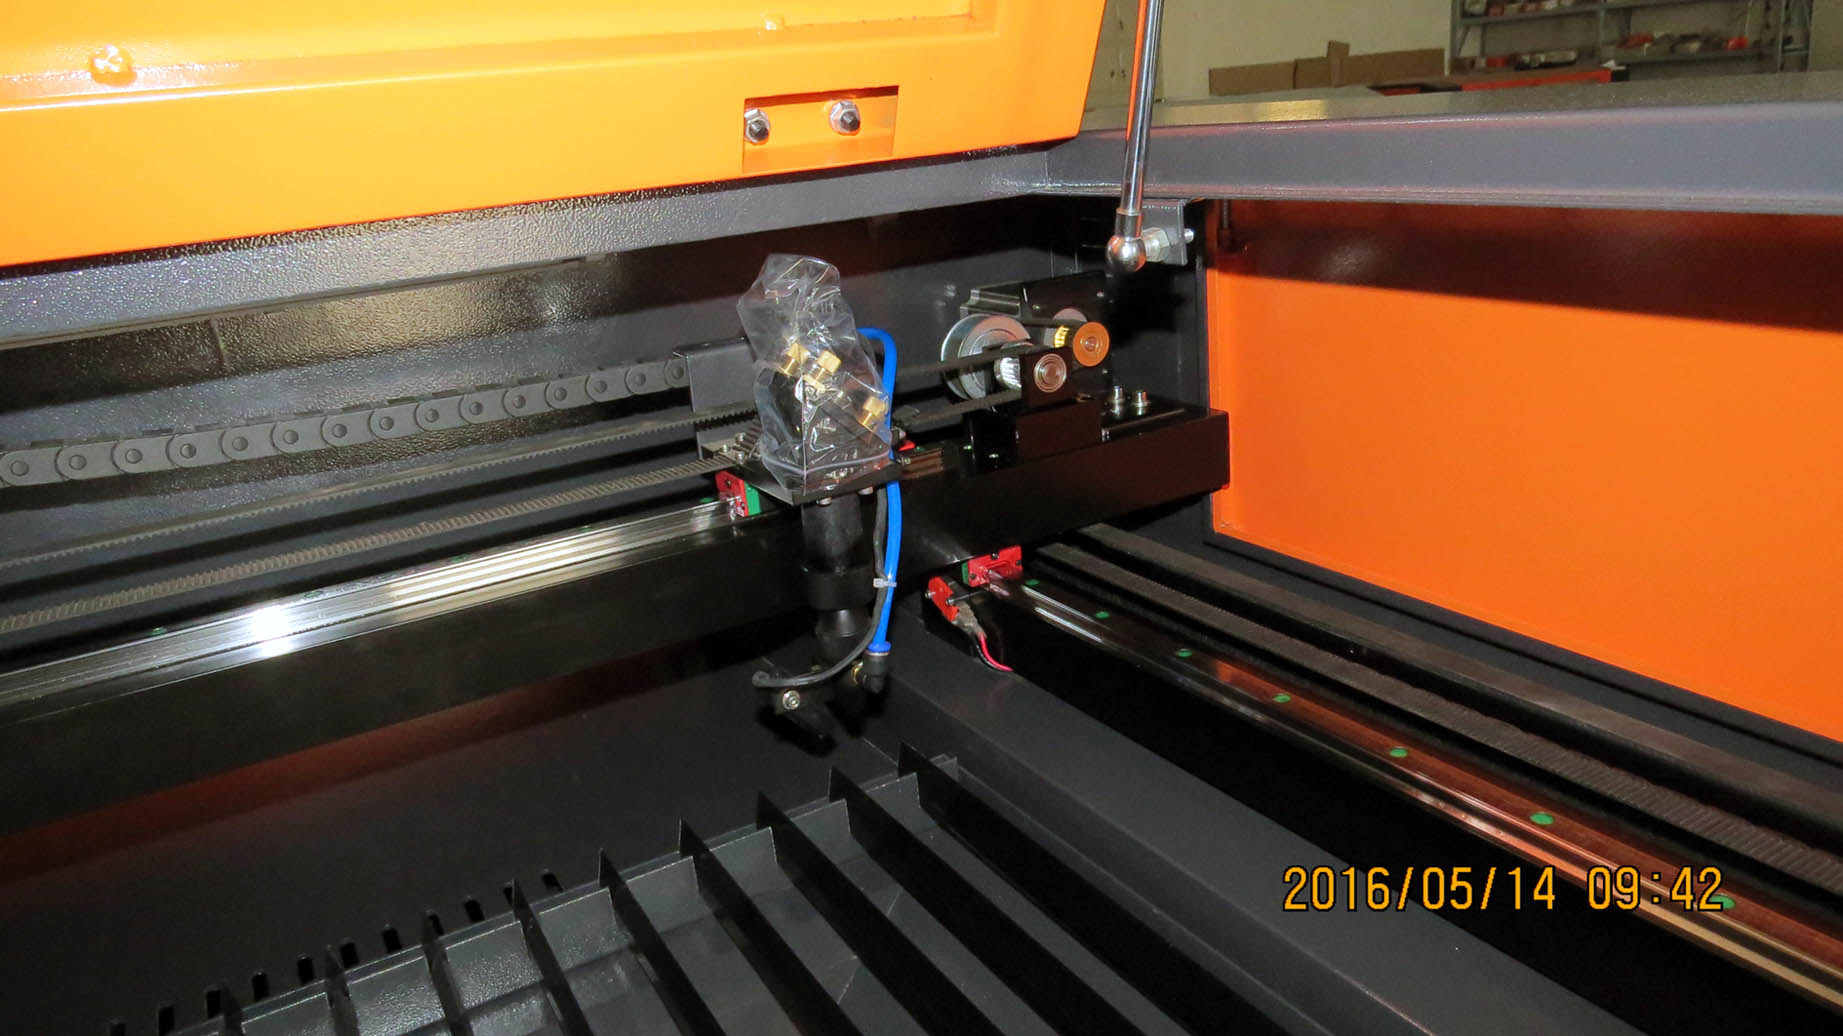 Flc1390 Laser Cutter and Engraver Machine